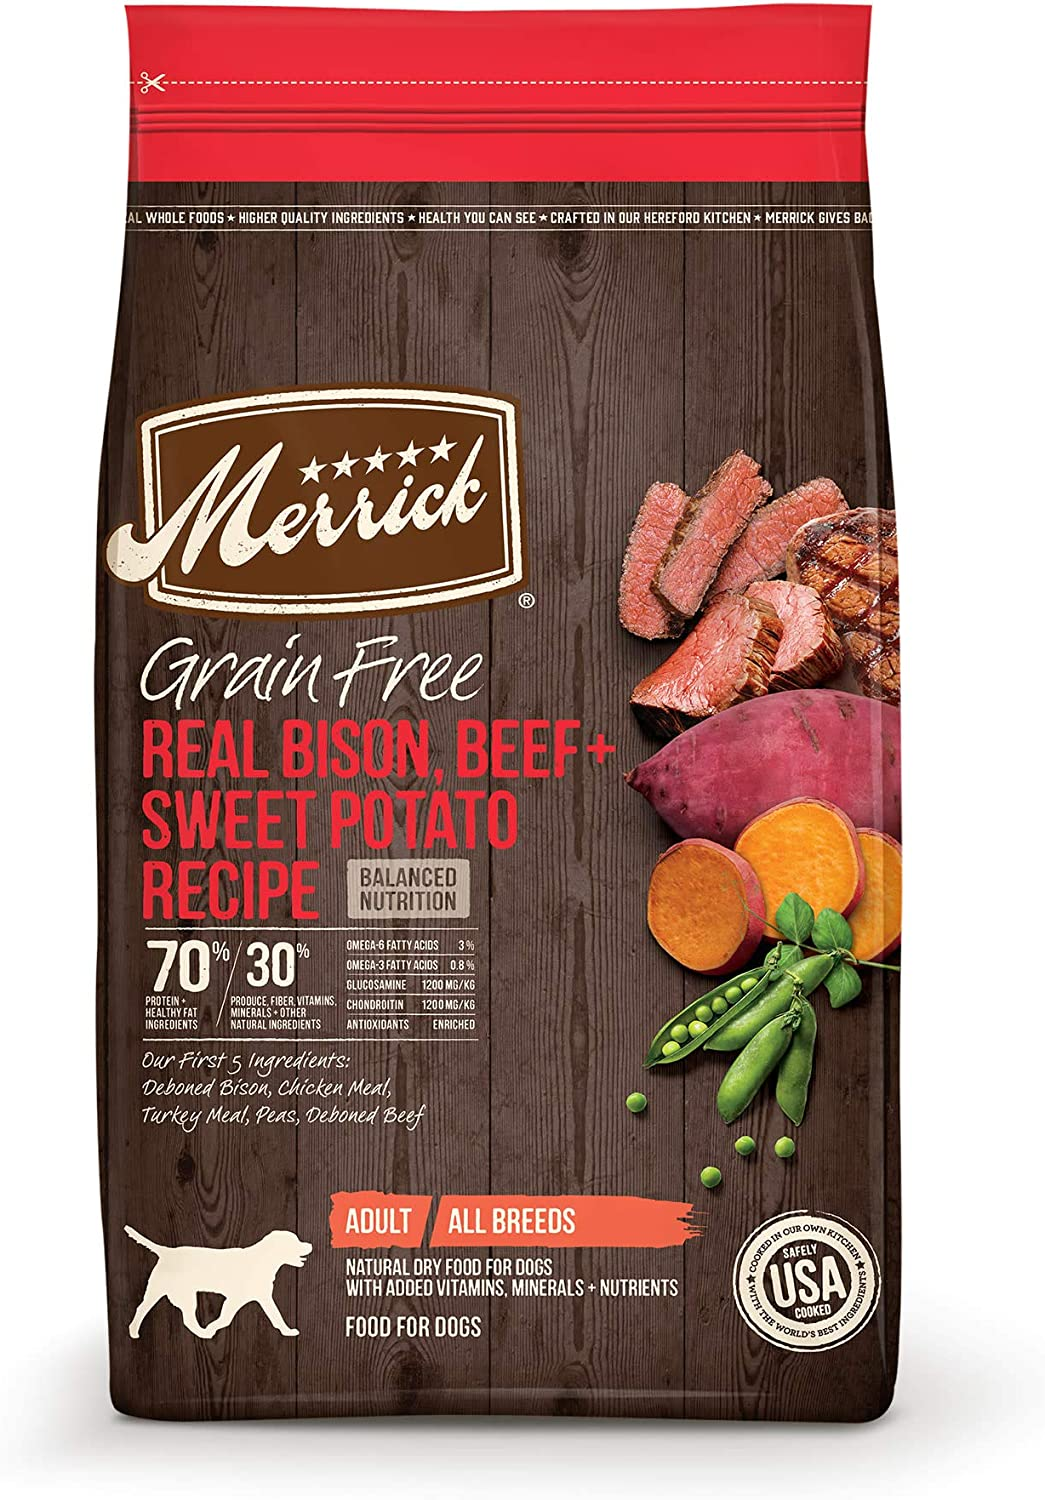 Merrick Grain Free Bison, Beef + Sweet Potato Recipe Dry Dog Food, 4 lbs.